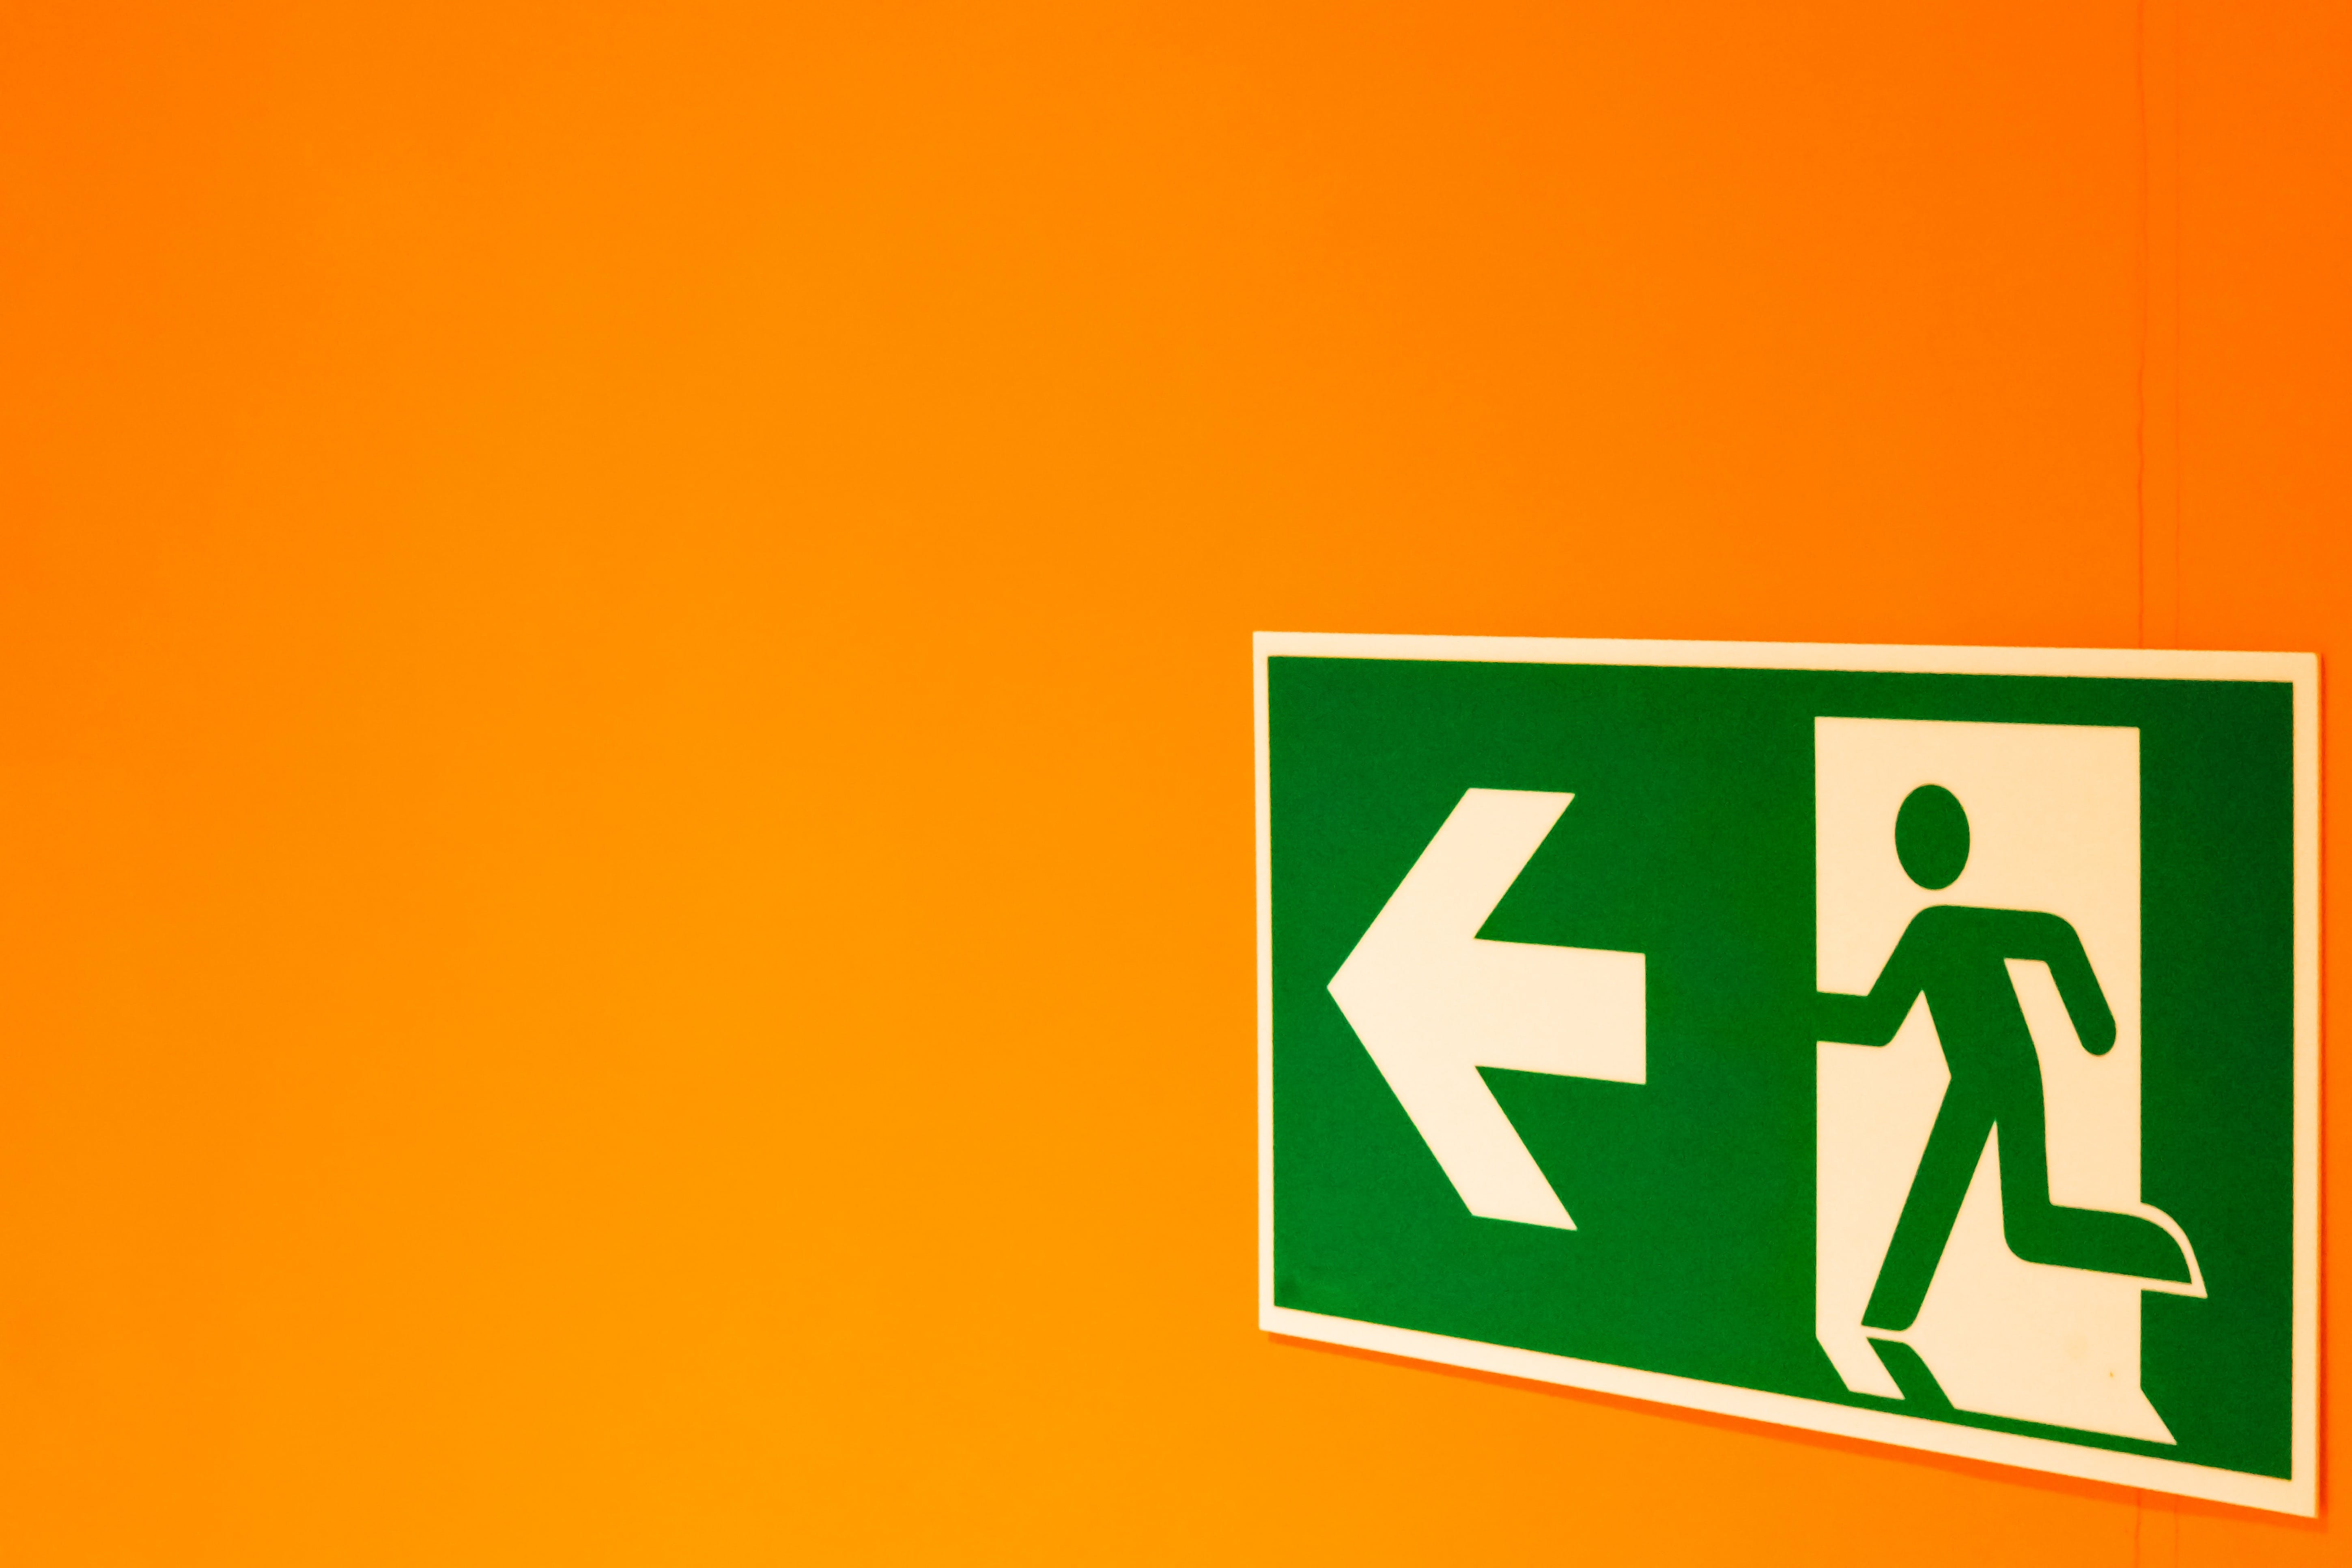 green exit sign on orange wall